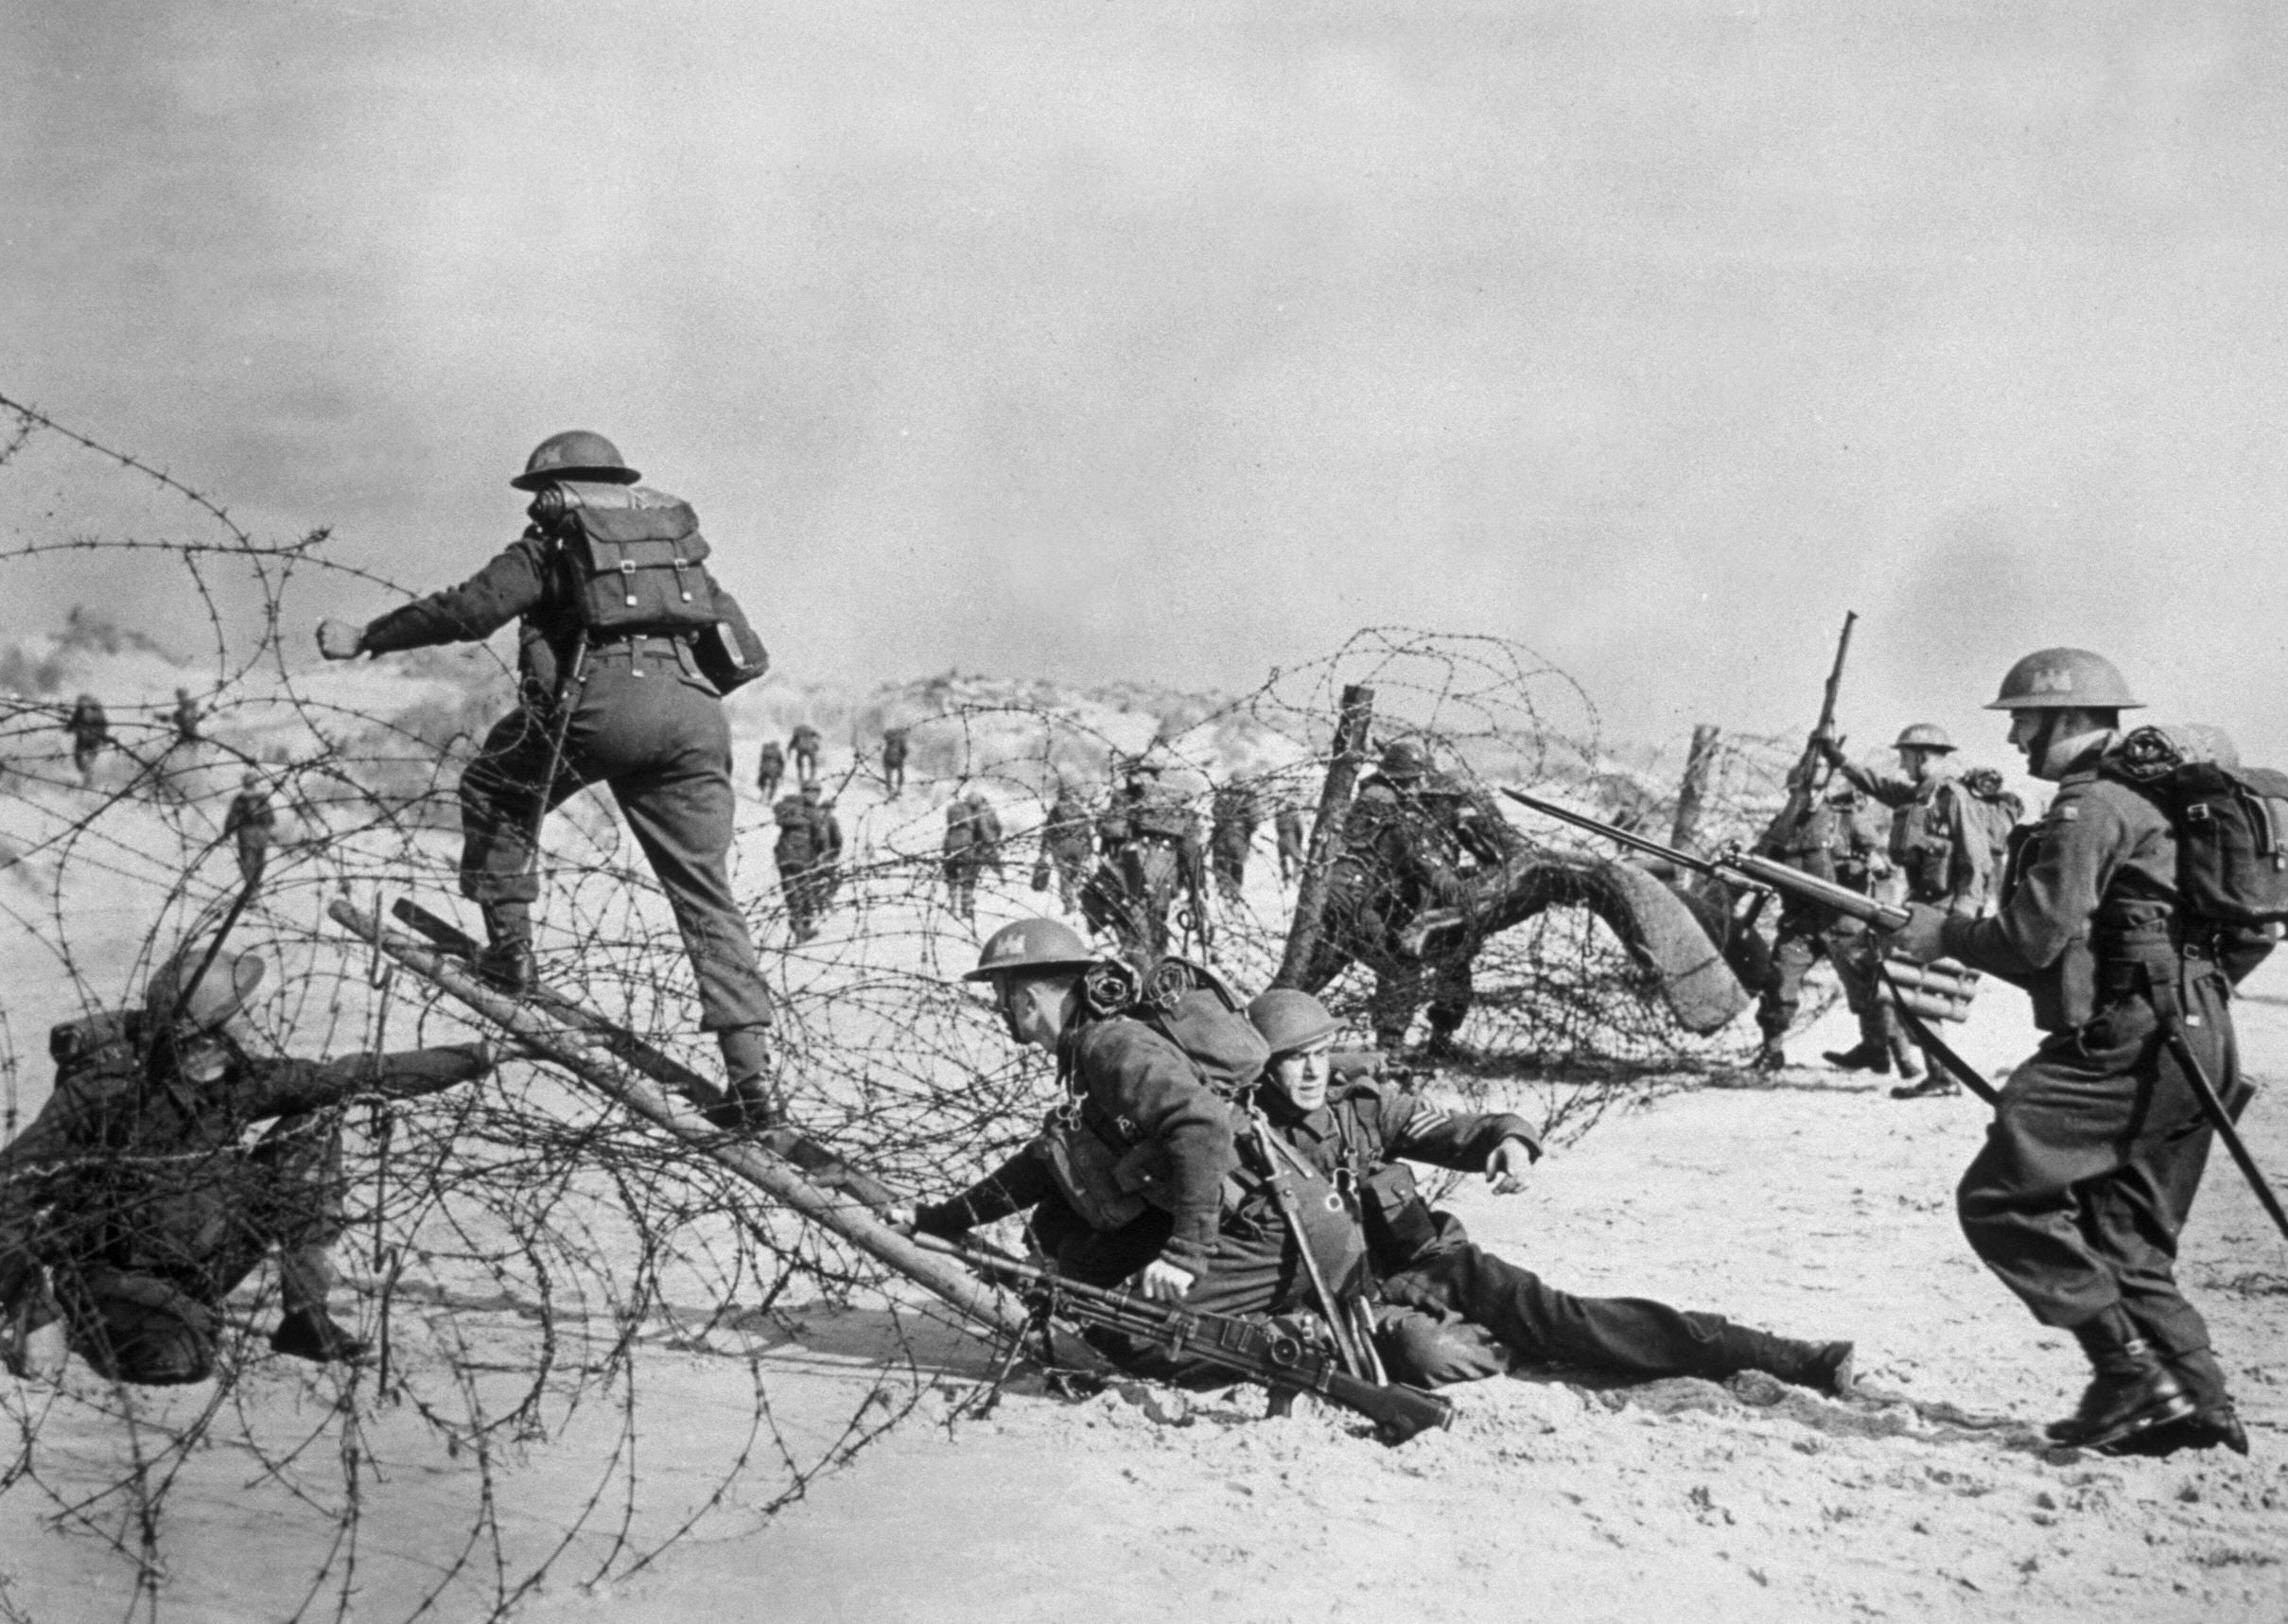 75 years after D-Day, the ideology we defeated isn't dead, just dormant